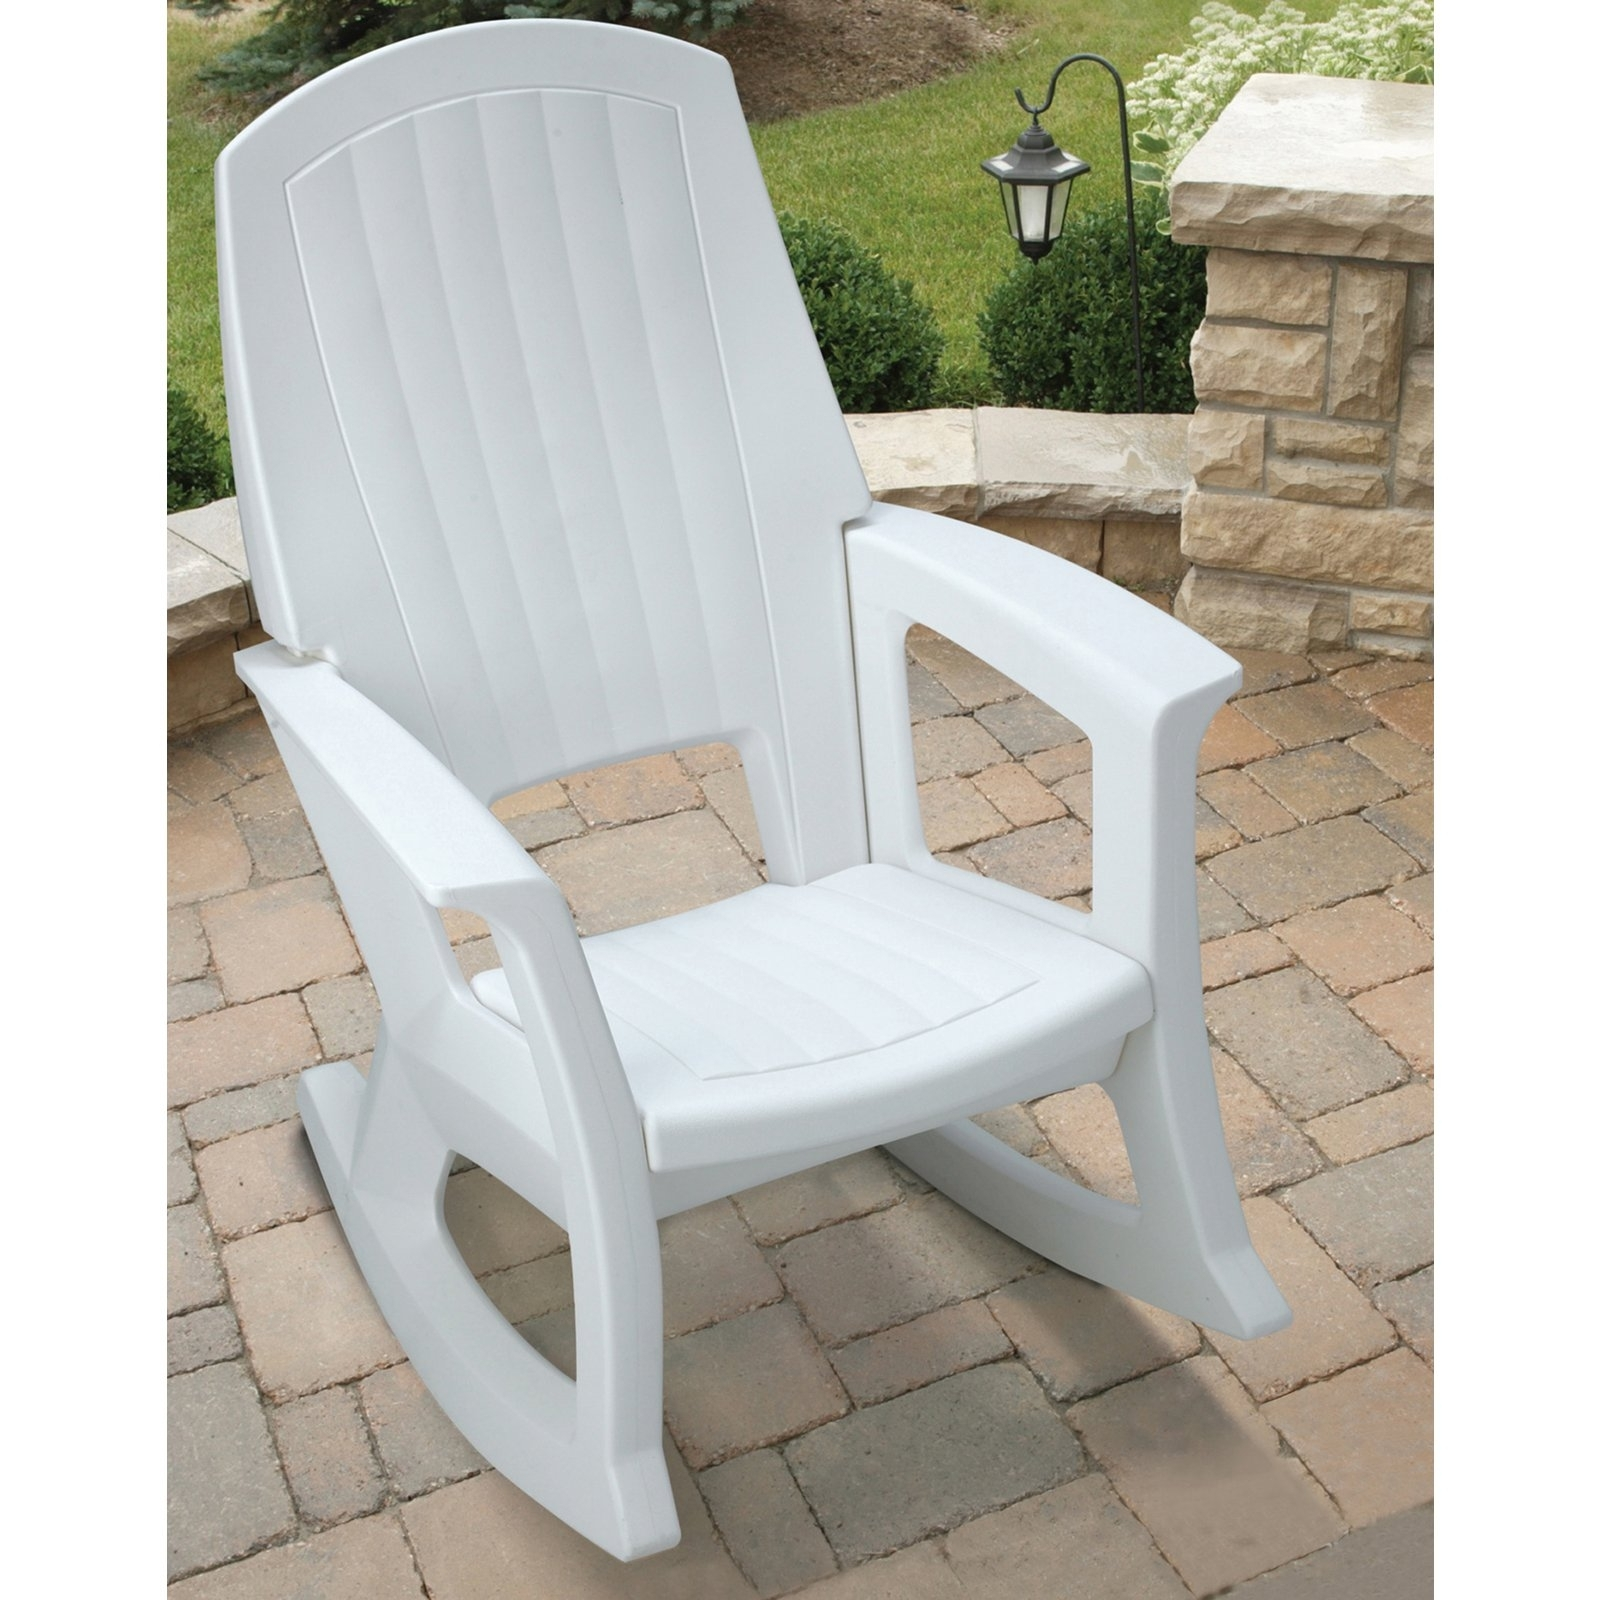 2017 White Patio Rocking Chairs Inside Semco Recycled Plastic Rocking Chair – Walmart (View 1 of 15)